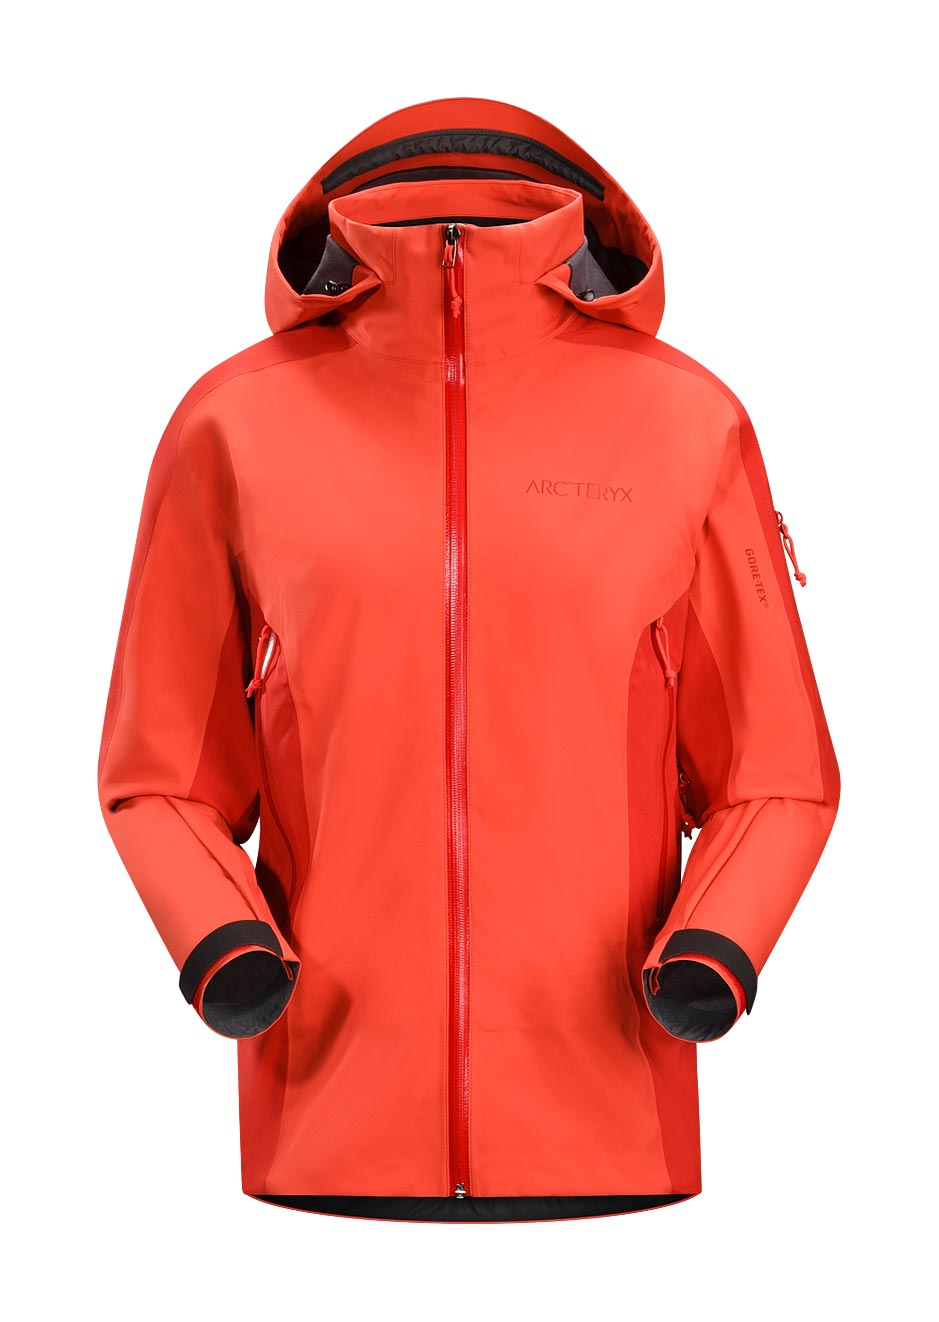 Arcteryx Lantern Stingray Jacket